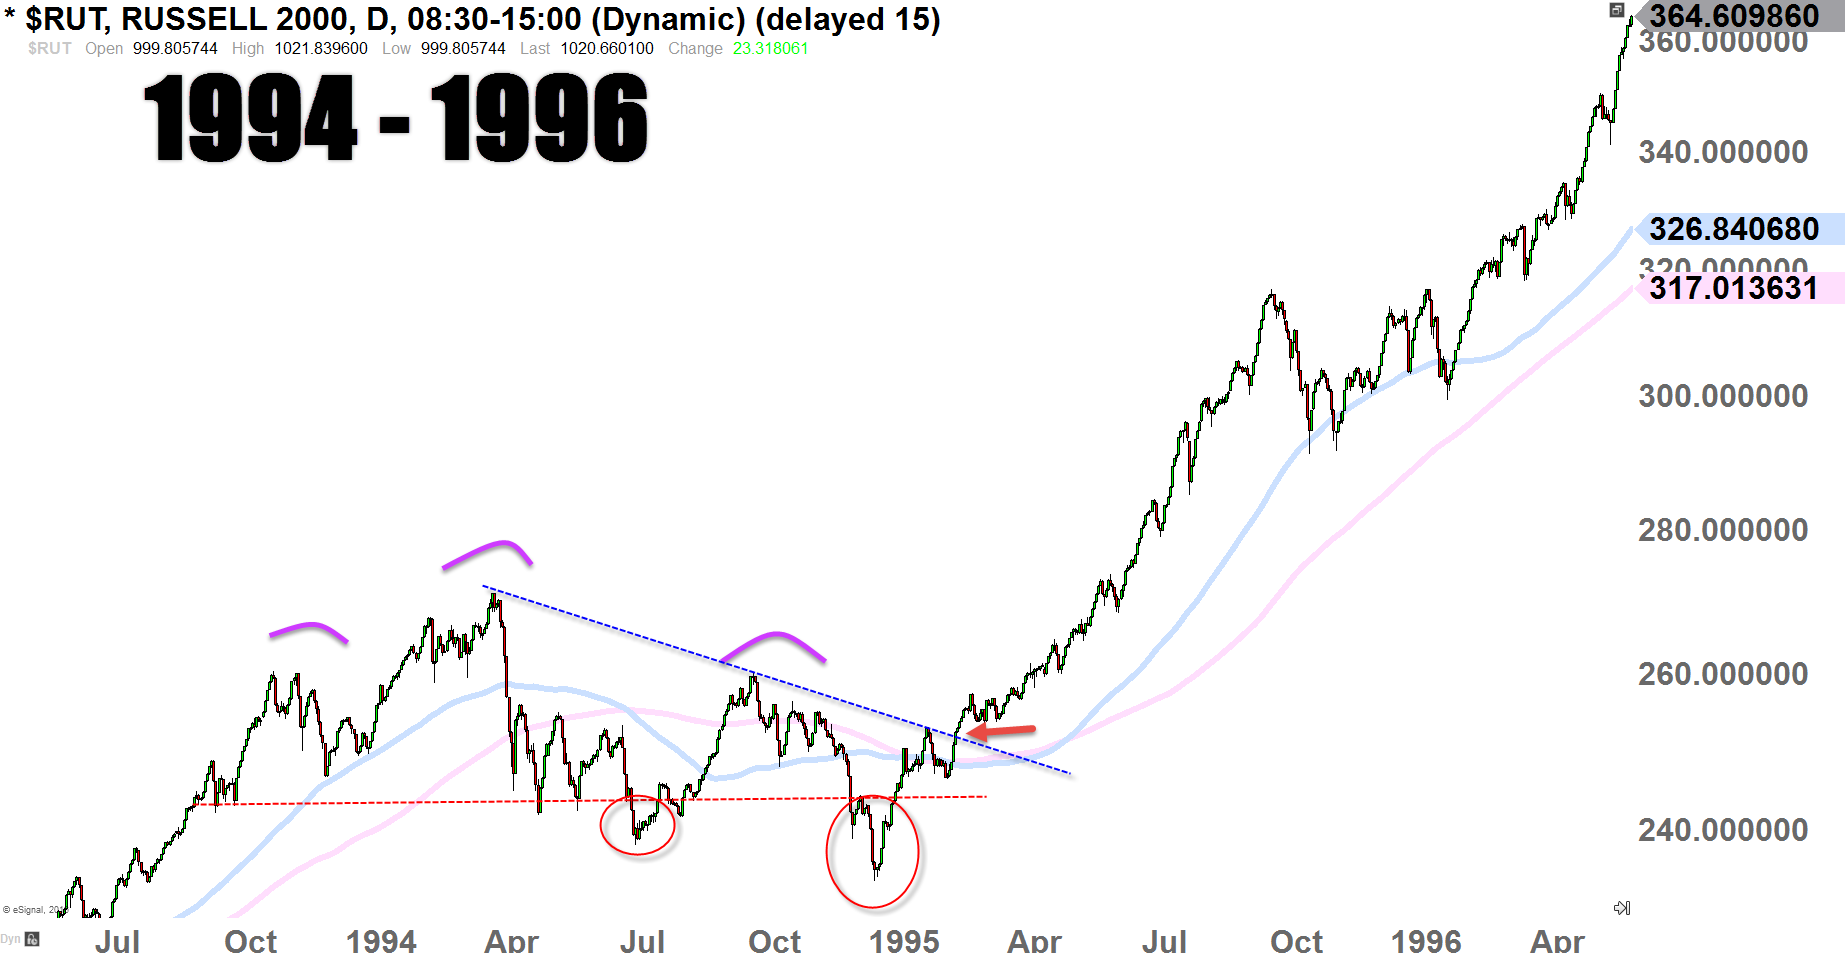 Russell 2000 Index Daily-Chart 1994 - 1996